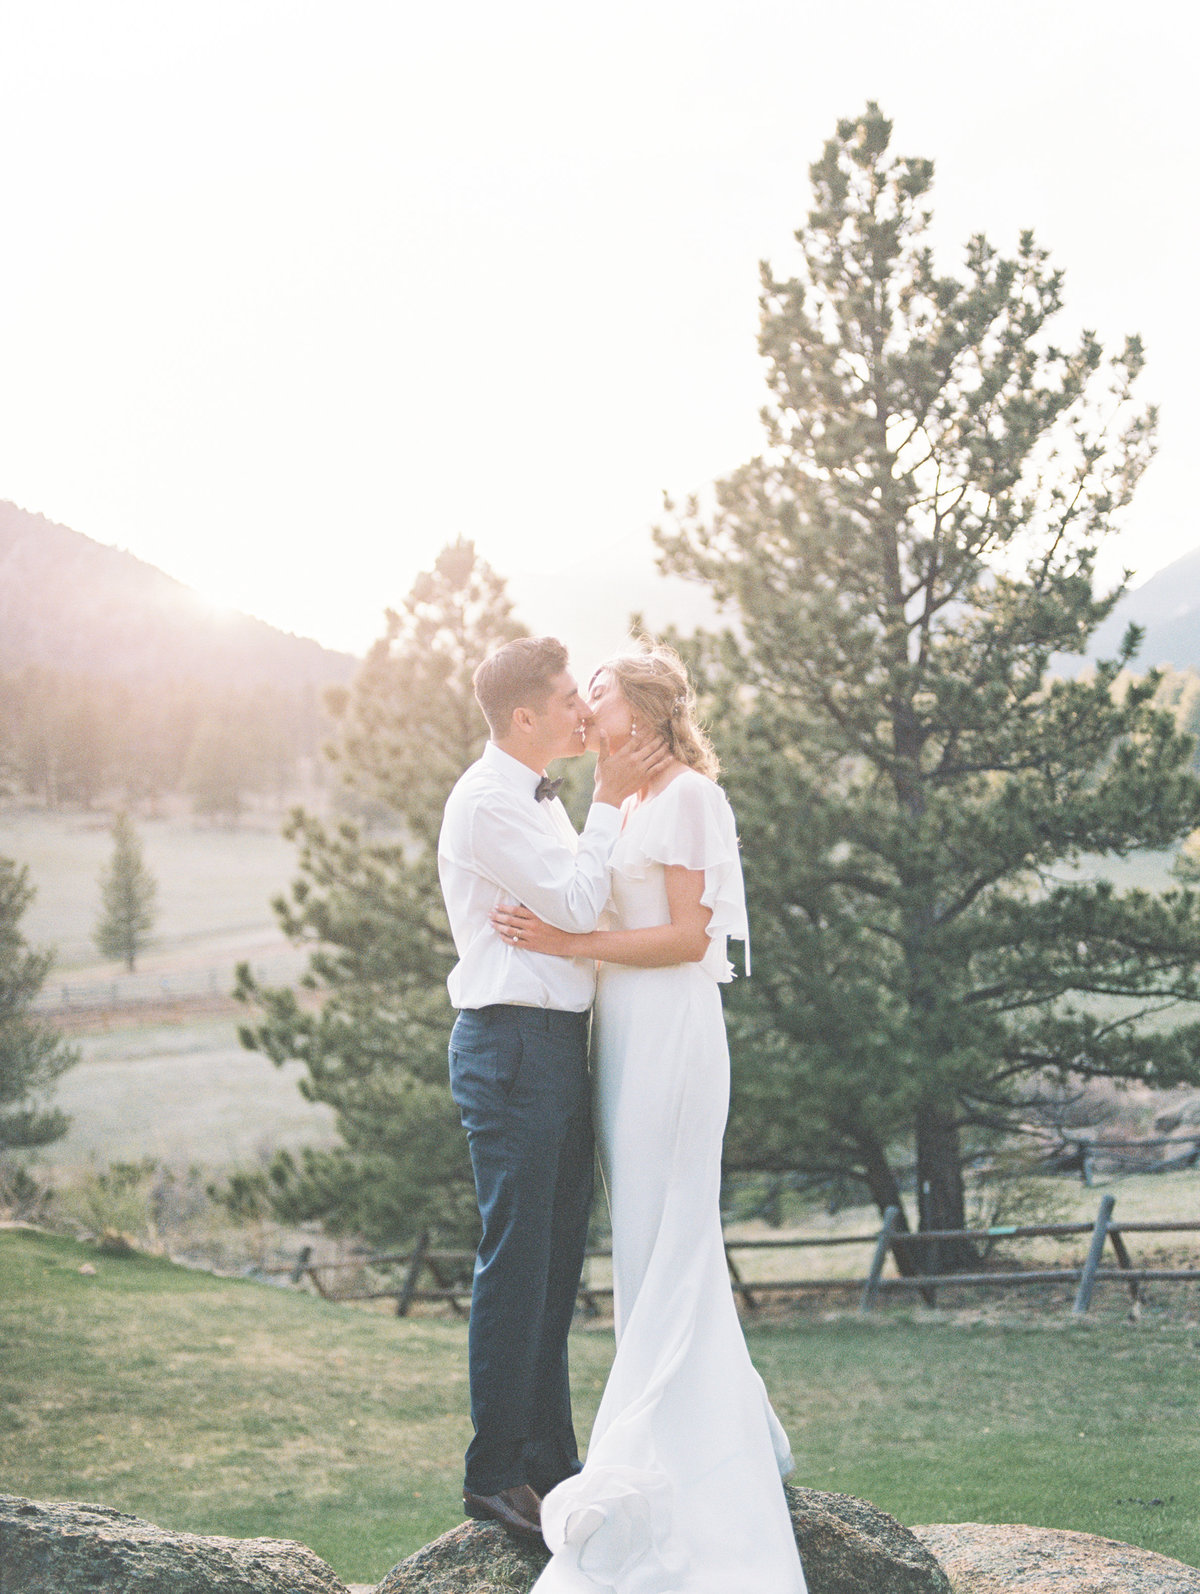 luck love photography - colorado wedding photographer - estes state park colorado wedding - fine art photographer - libby & david-75